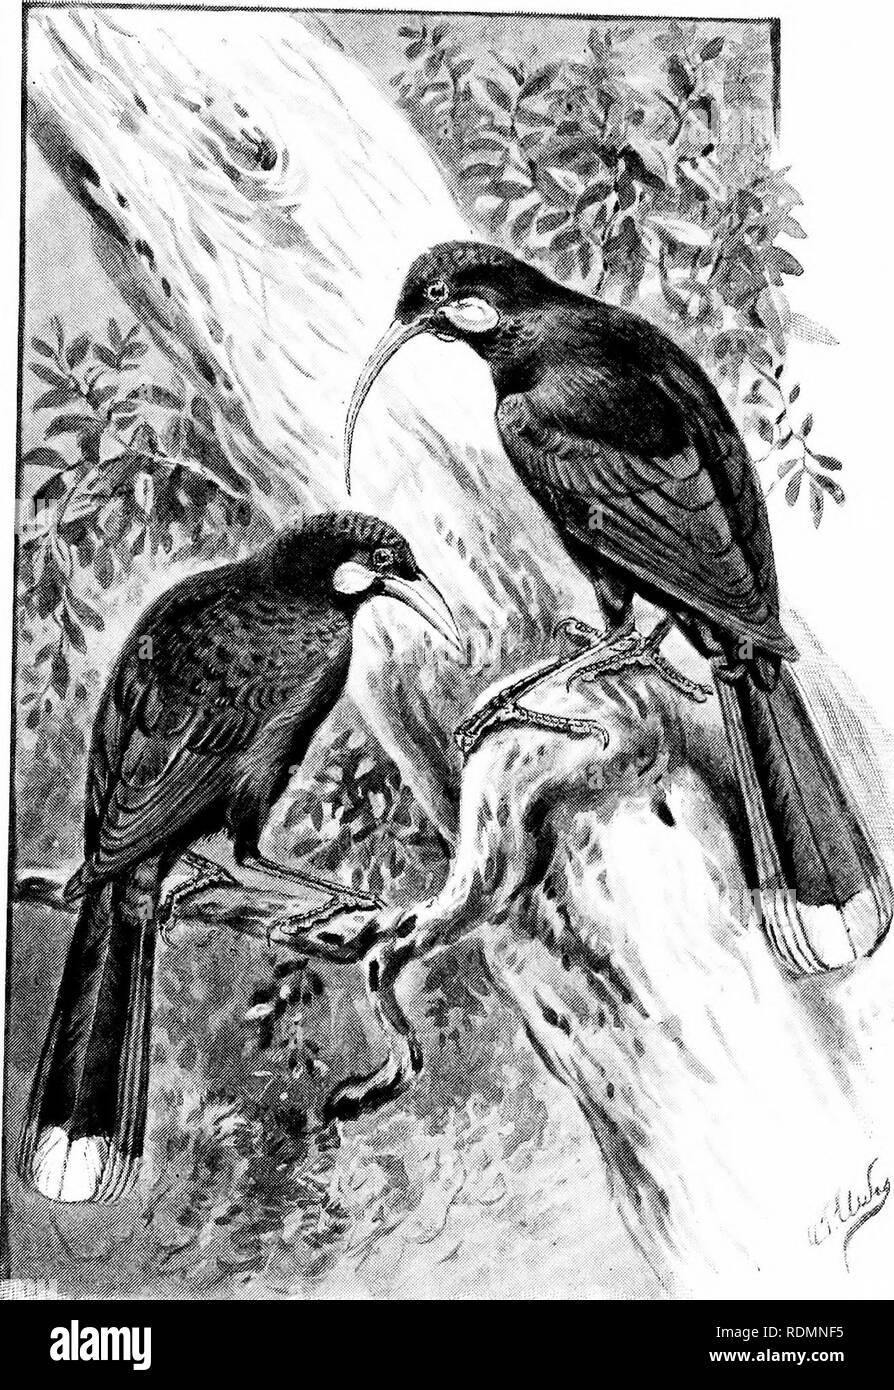 . Wonders of the bird world. Birds. The Huia {Heteralocha acutirostris).. Please note that these images are extracted from scanned page images that may have been digitally enhanced for readability - coloration and appearance of these illustrations may not perfectly resemble the original work.. Sharpe, Richard Bowdler, 1847-1909. New York, Frederick A. Stokes company Stock Photo